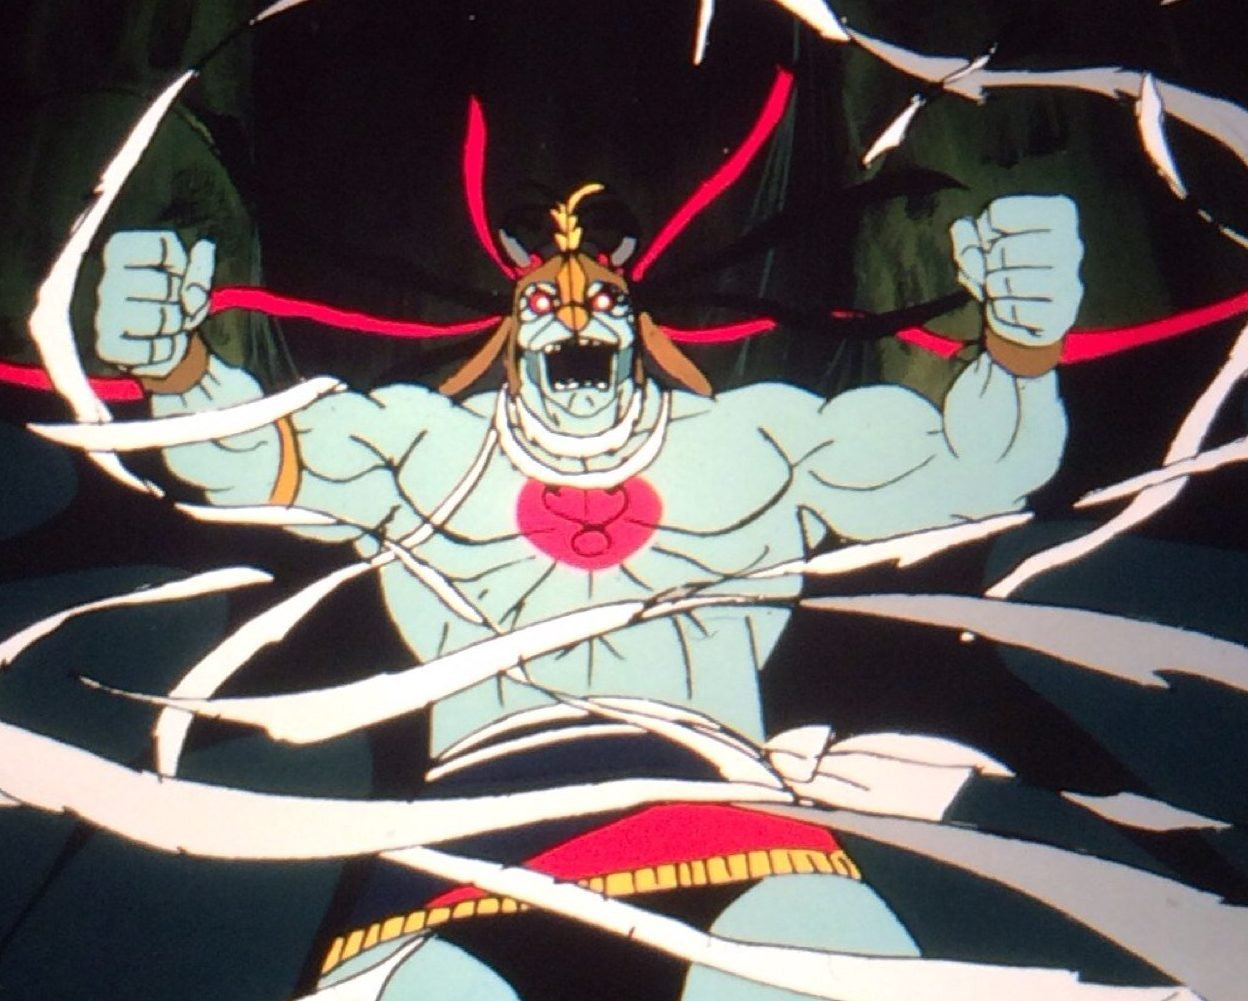 Mumm Ra e1628776692143 10 Villains From 80s Cartoons Who We All Loved To Hate Growing Up